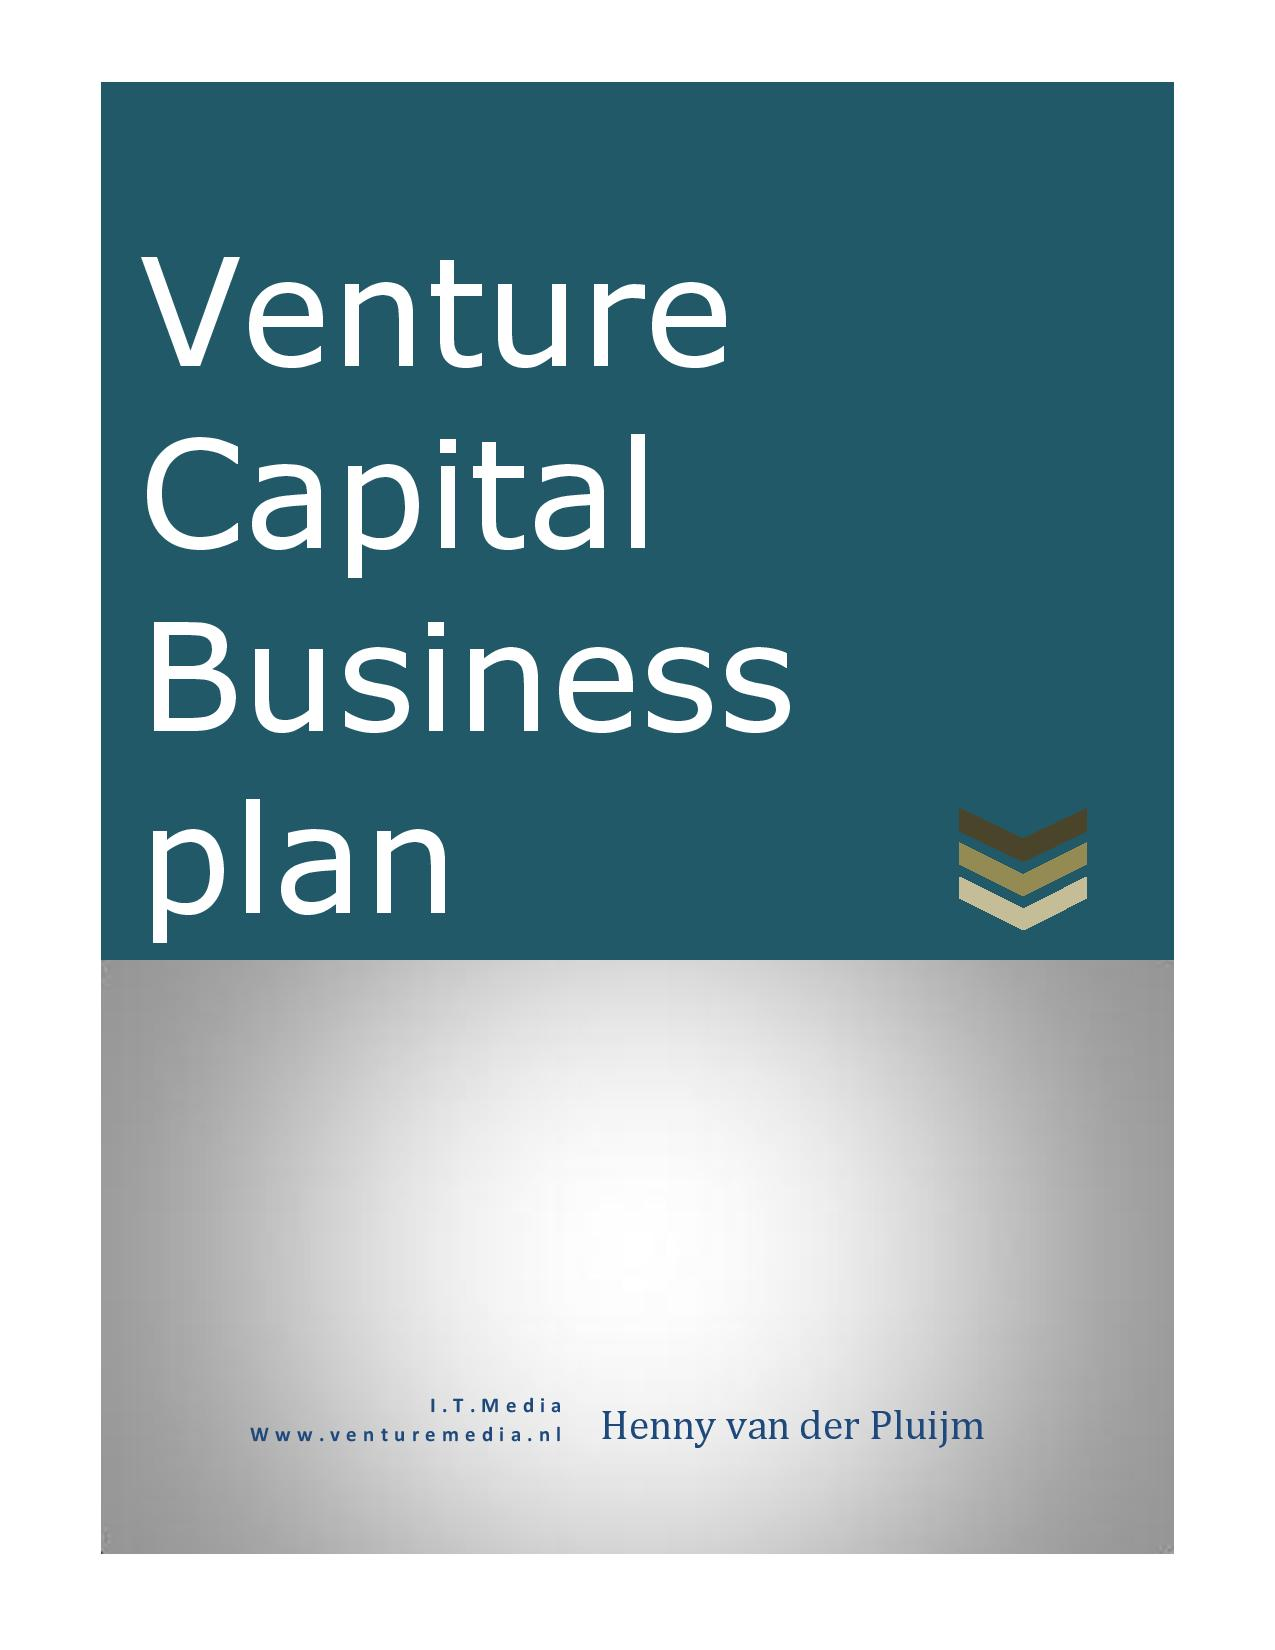 venture capital business plan Venture capital business plan outline  a strong, compelling business plan is typically the cornerstone of raising money for a new venture and/or subsequent funding rounds.